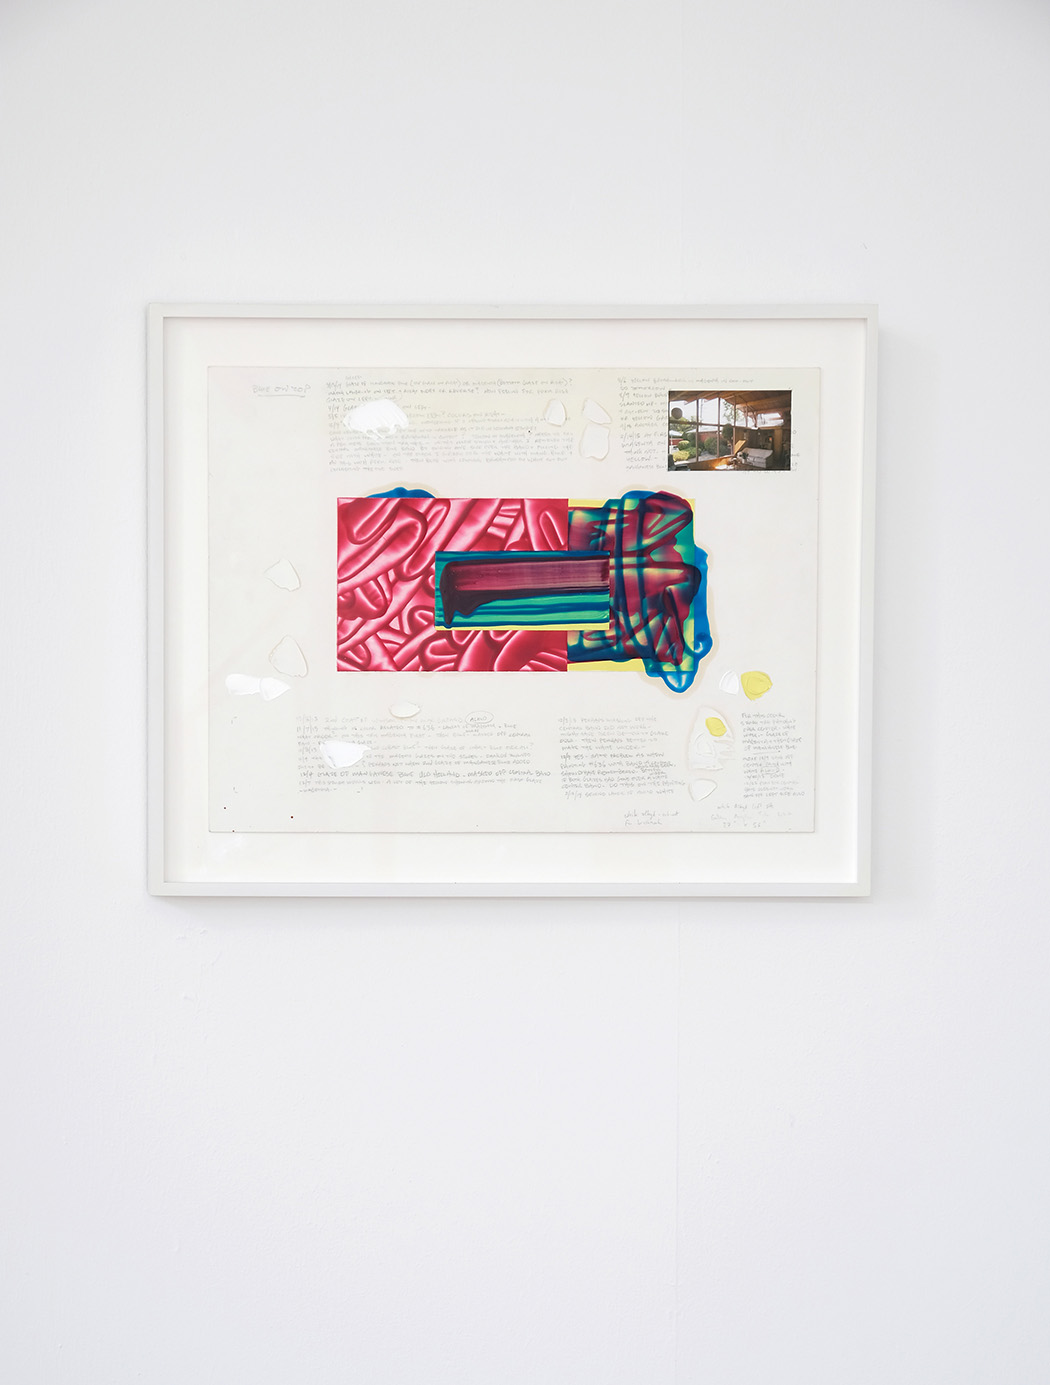 David Reed, pencil, acry, oil, fotocollage on paper